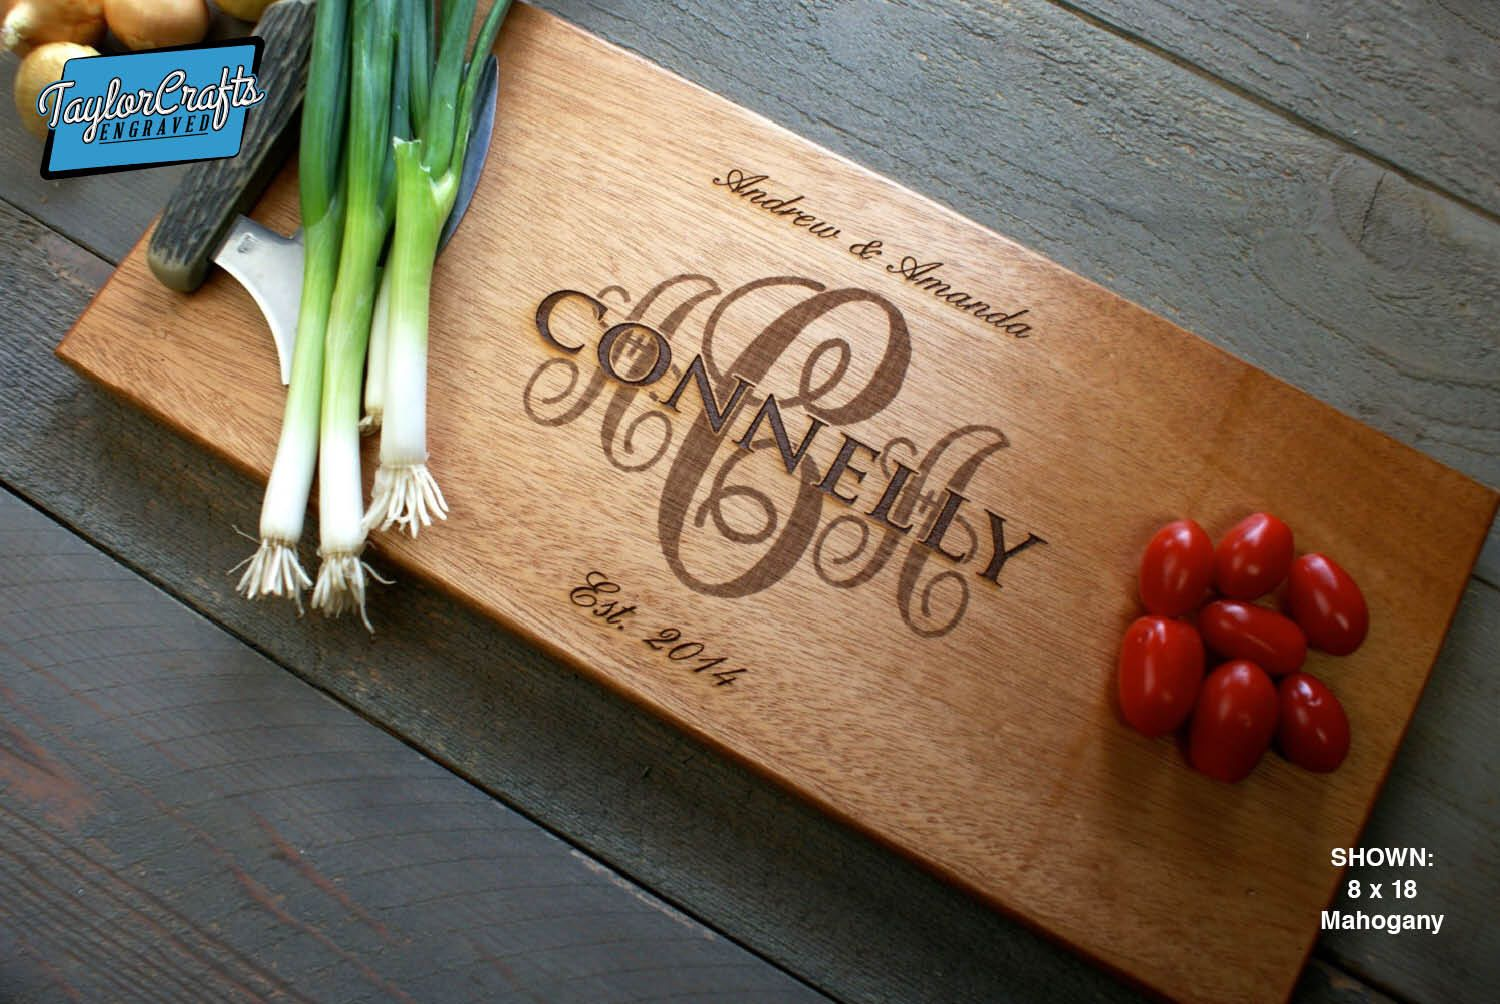 Personalized Engraved Cutting Board- Wedding Gift, Anniversary Gifts, Housewarming Gift by TaylorCraftsEngraved on Etsy https://www.etsy.com/listing/82313006/personalized-engraved-cutting-board